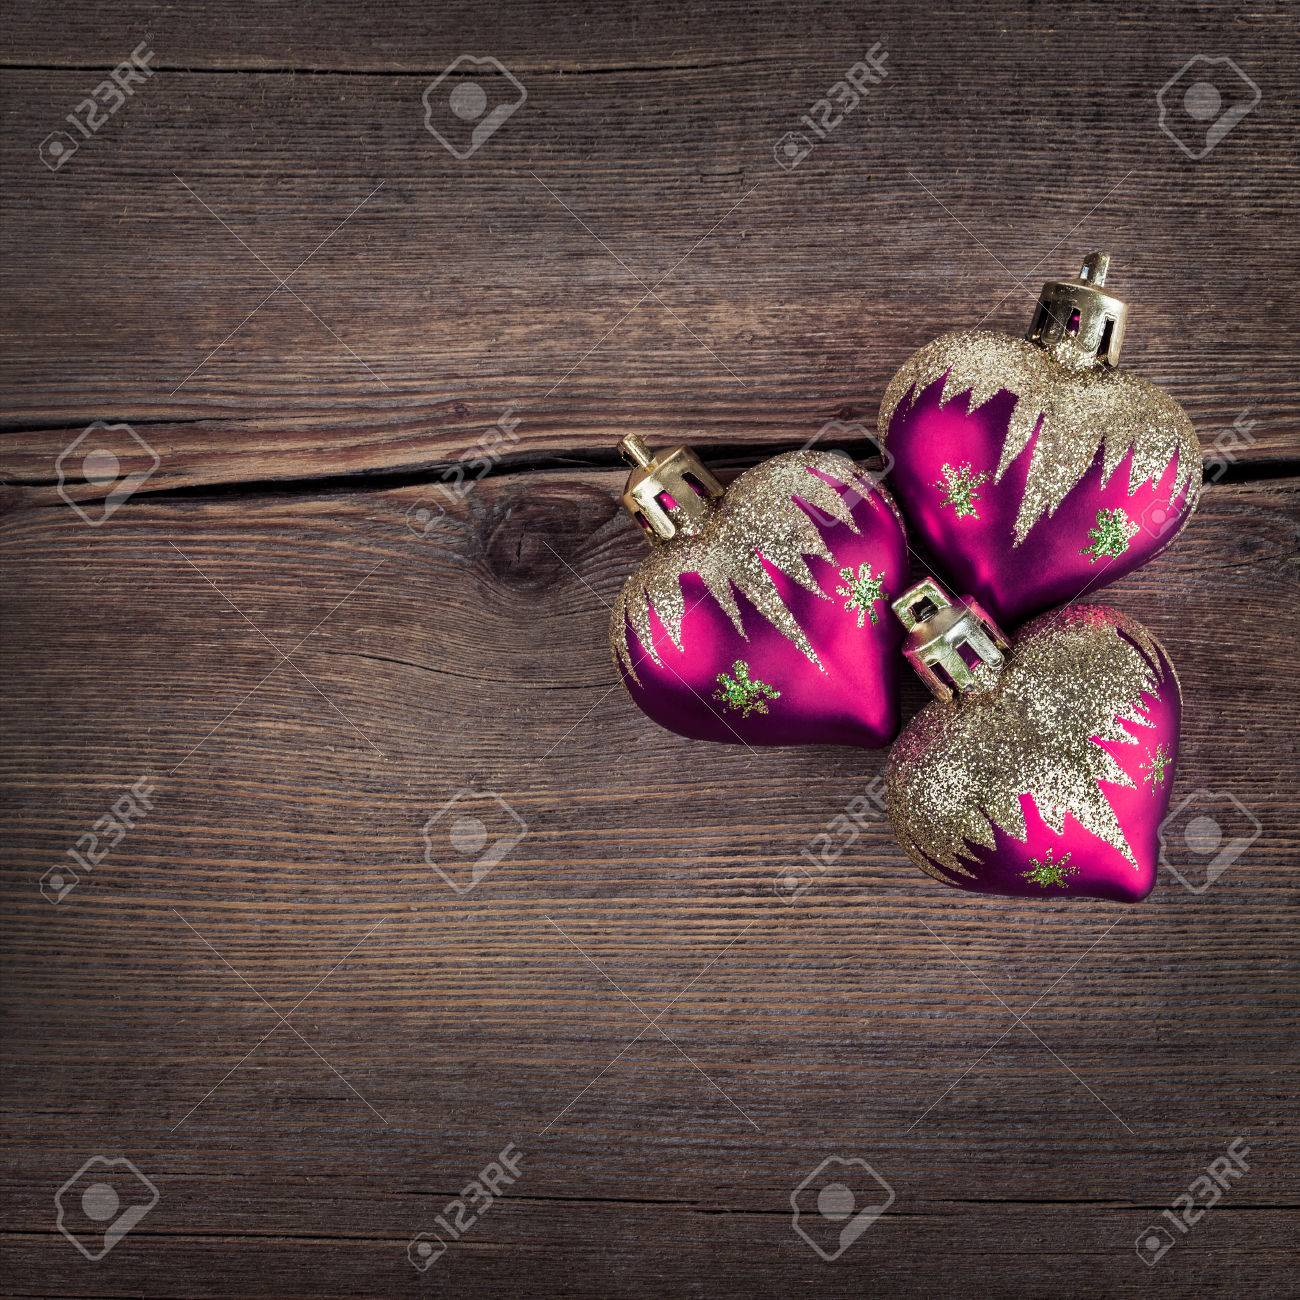 Red Heart Over Rustic Wooden Background Texture Close